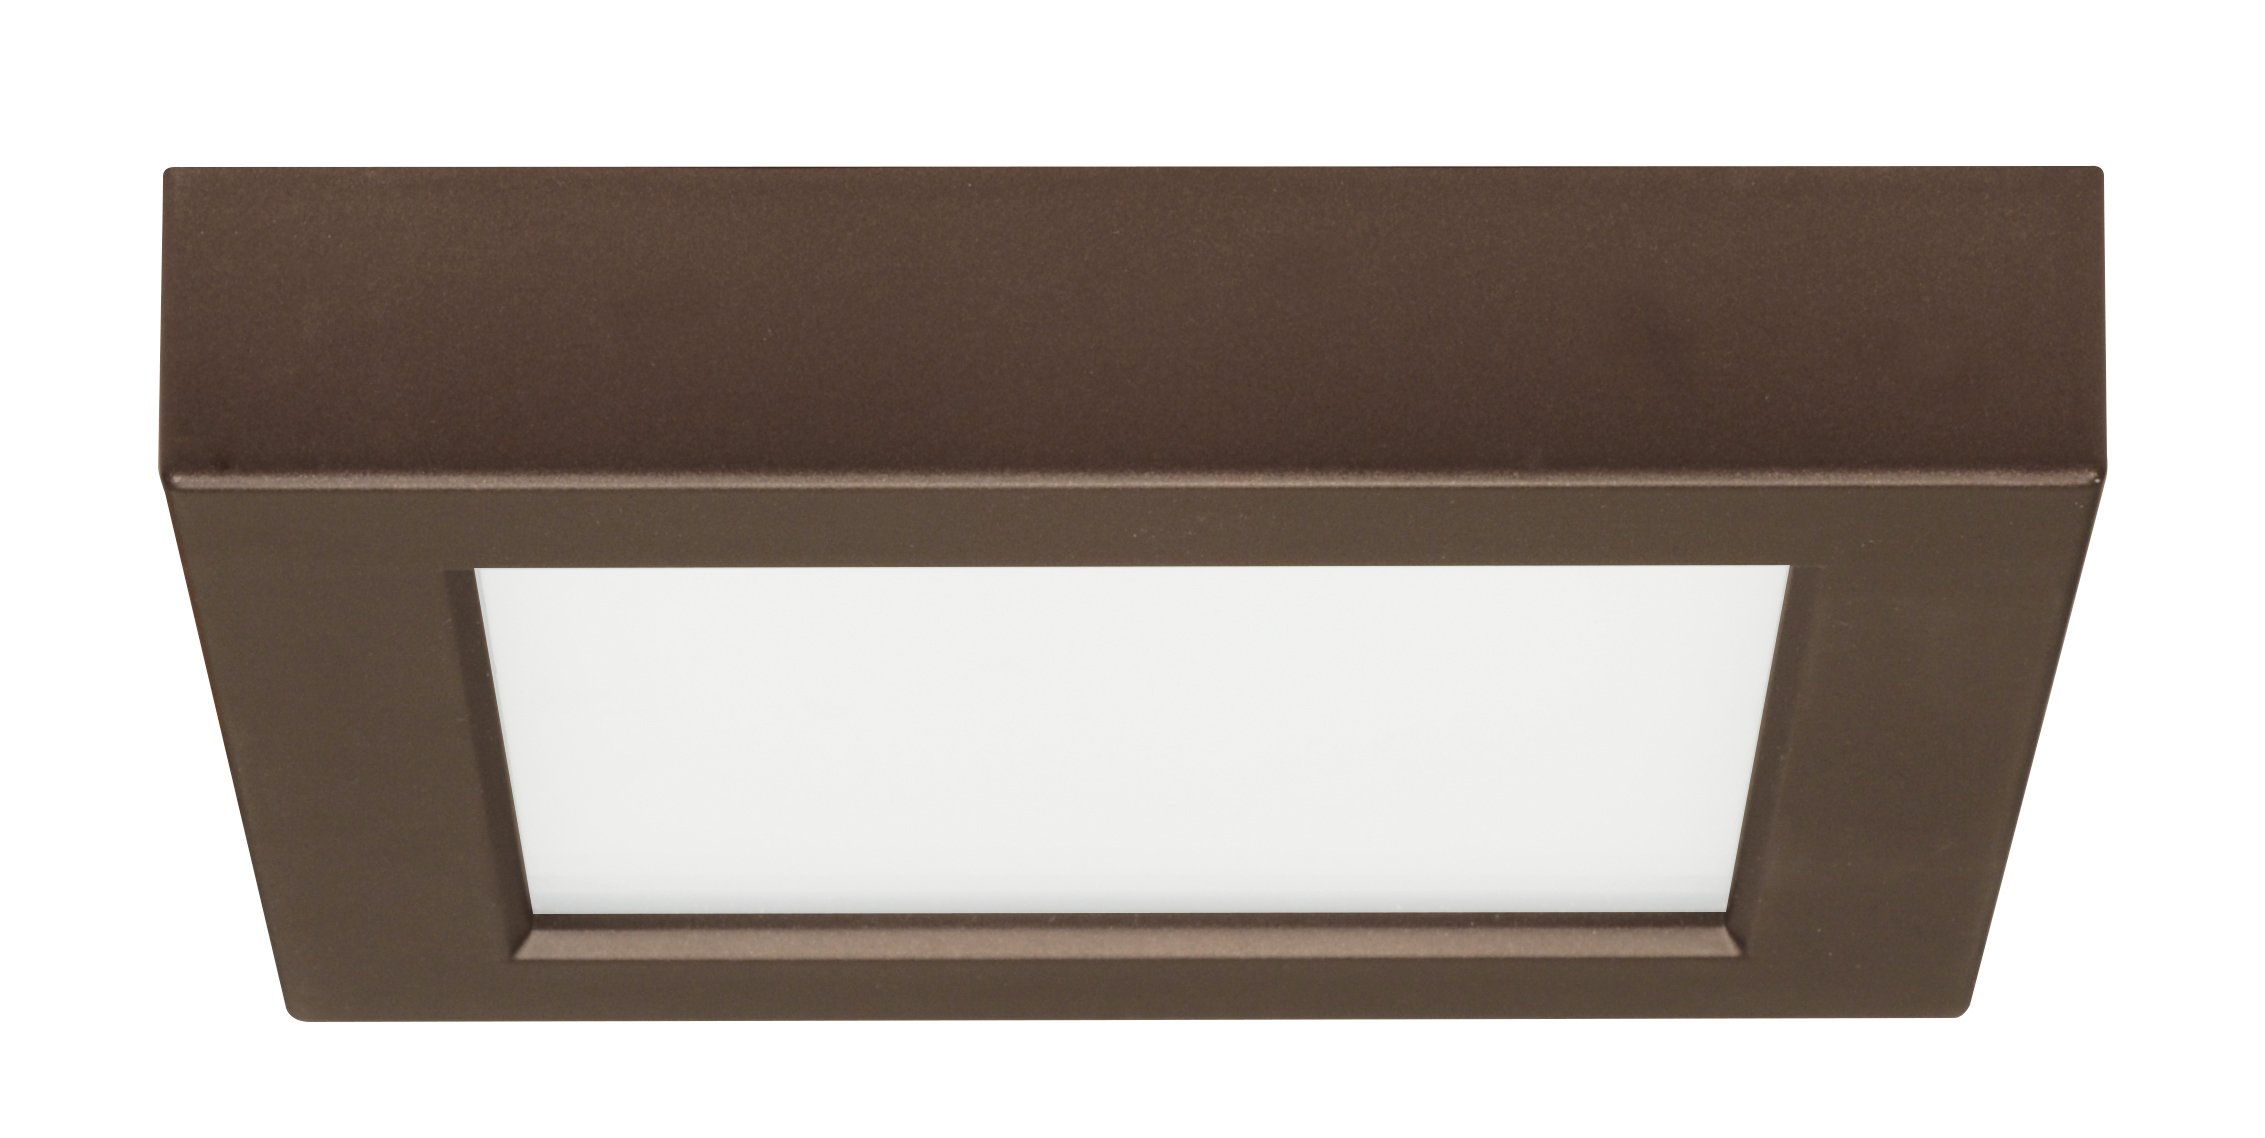 Satco Products S9326 Blink Flush Mount LED Fixture, 10.5W/5'', Bronze